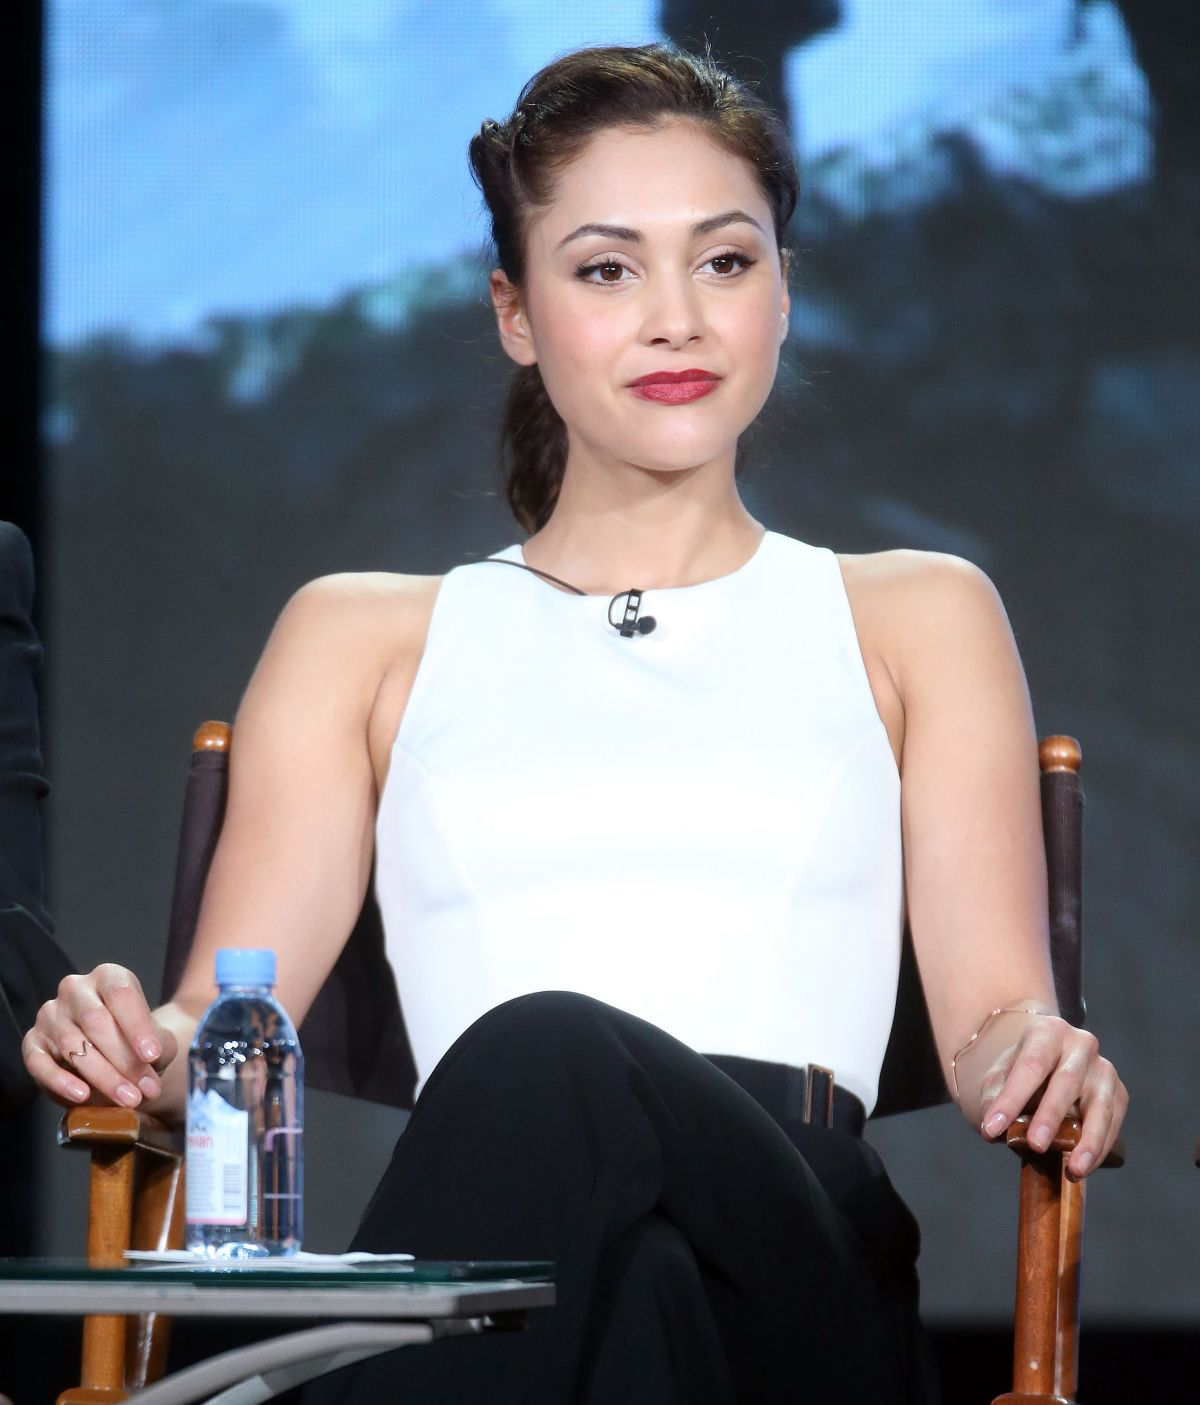 LINDSEY MORGAN at The 100 Panel at 2016 Winter TCA Tour in Pasadena 10/10/2016